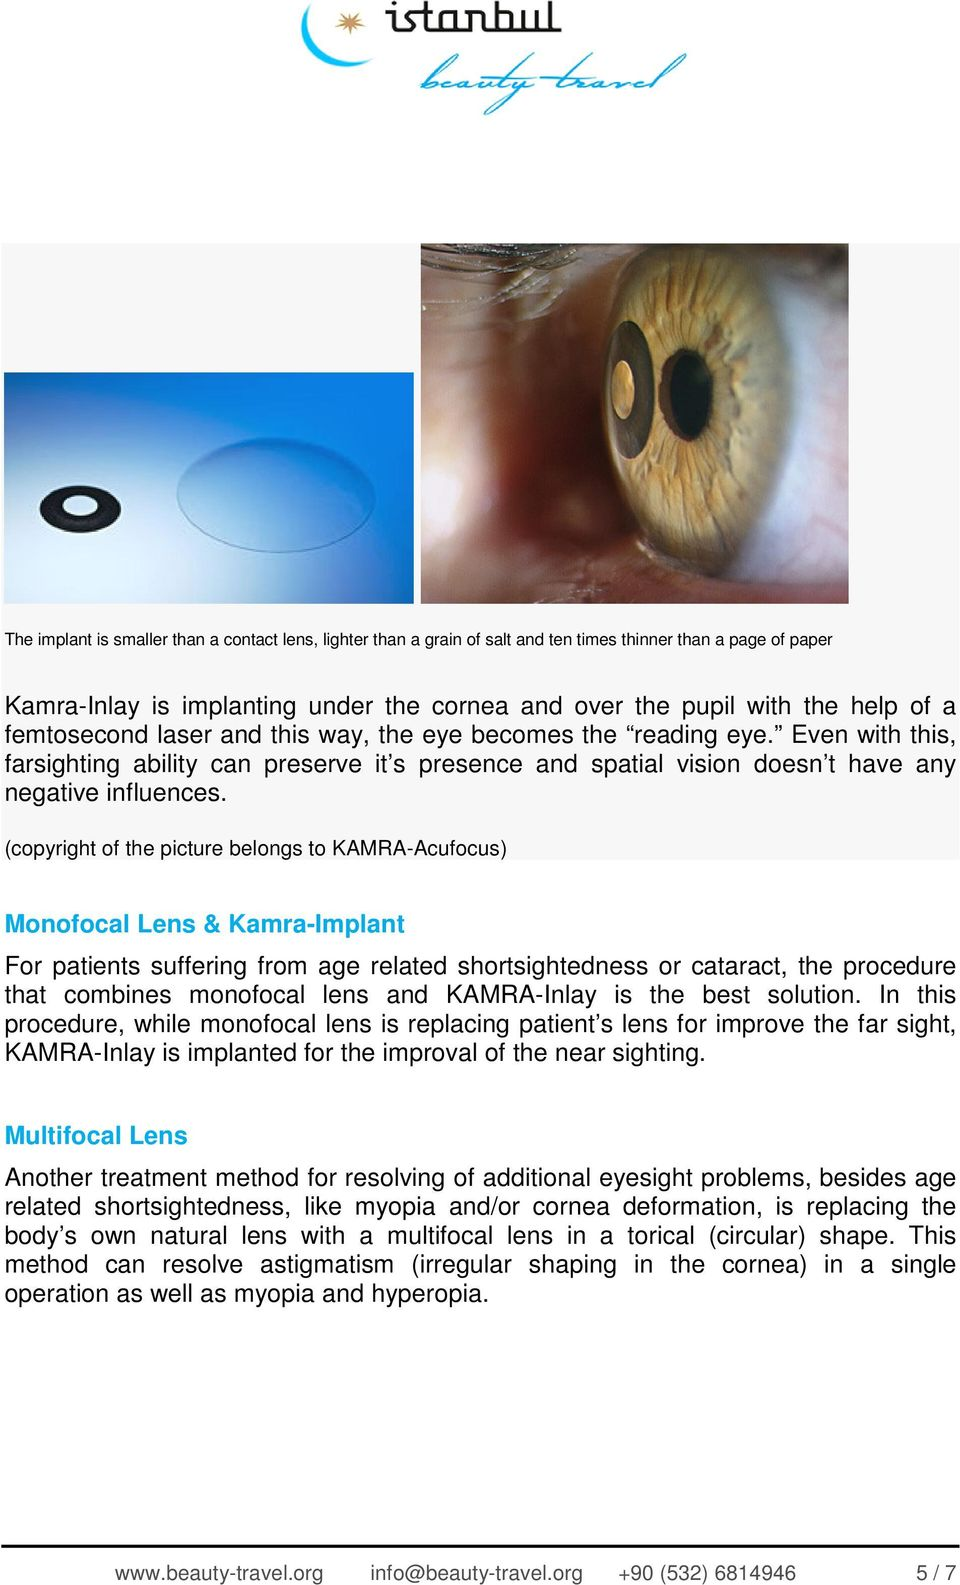 (copyright of the picture belongs to KAMRA-Acufocus) Monofocal Lens & Kamra-Implant For patients suffering from age related shortsightedness or cataract, the procedure that combines monofocal lens